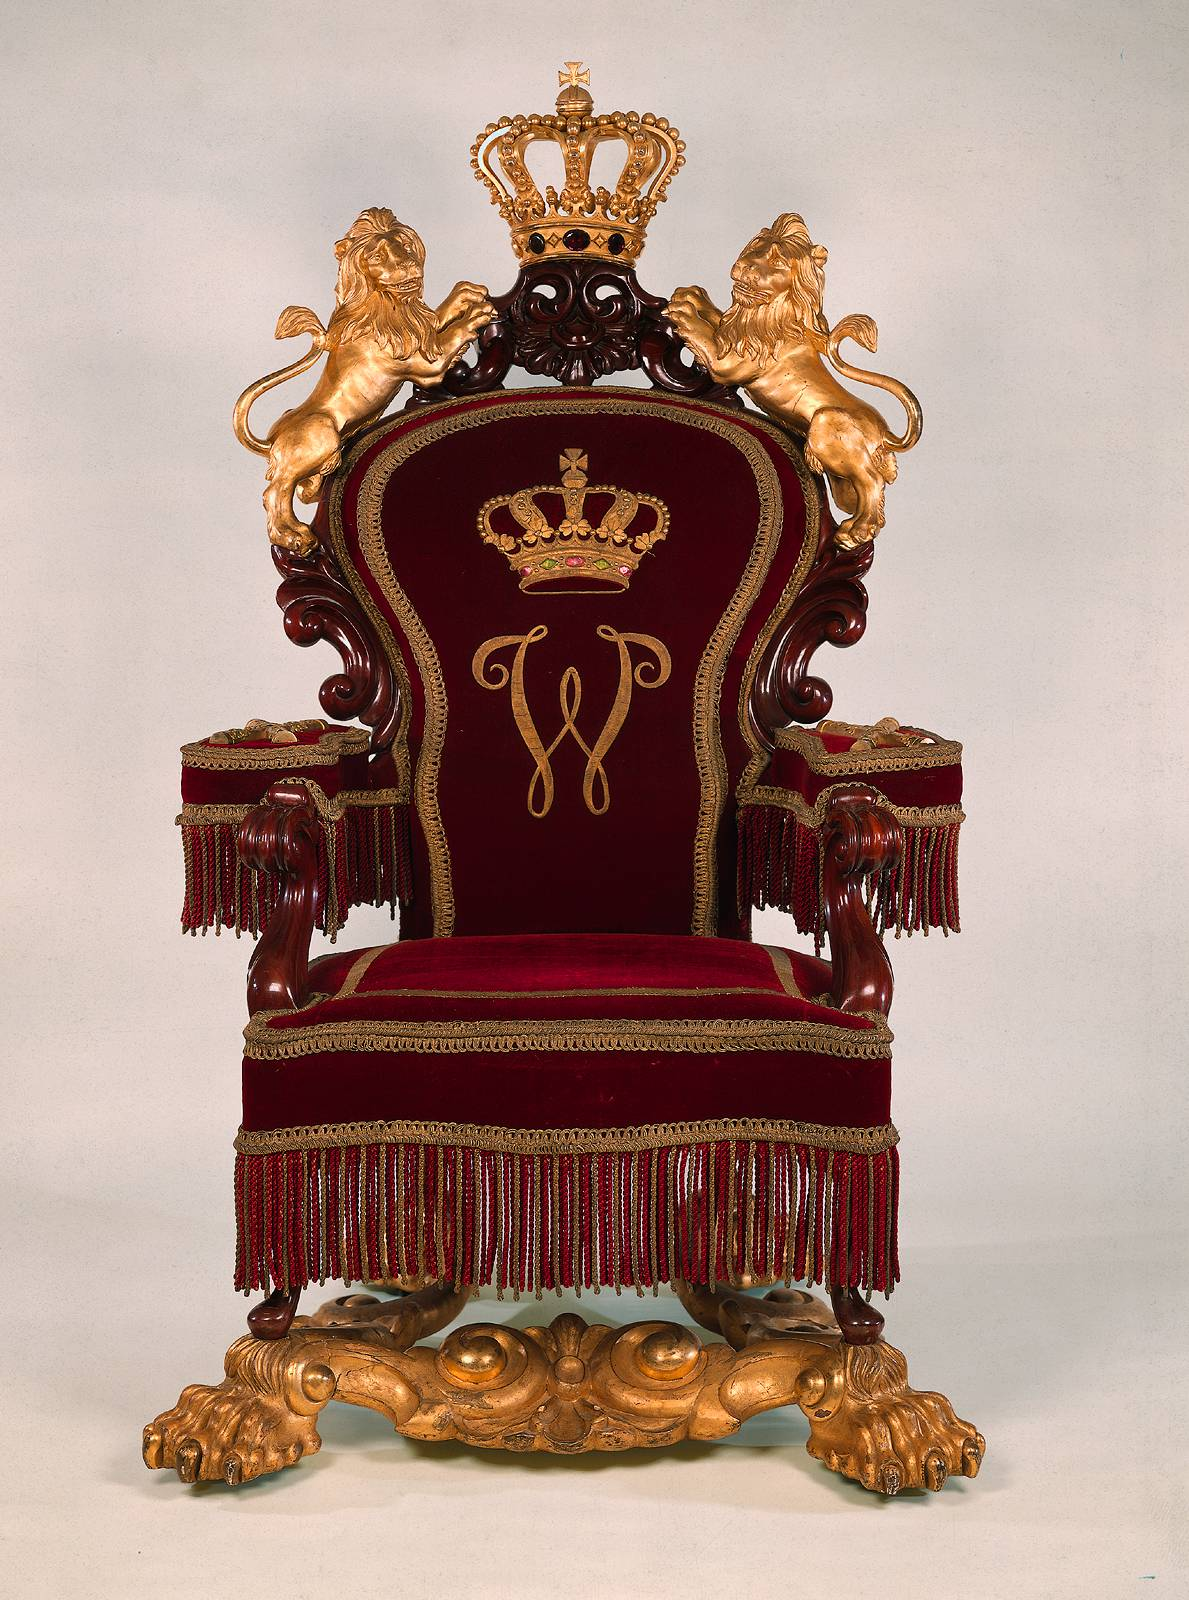 A Royal Throne By The Horrix Brothers Meubelenfabriek